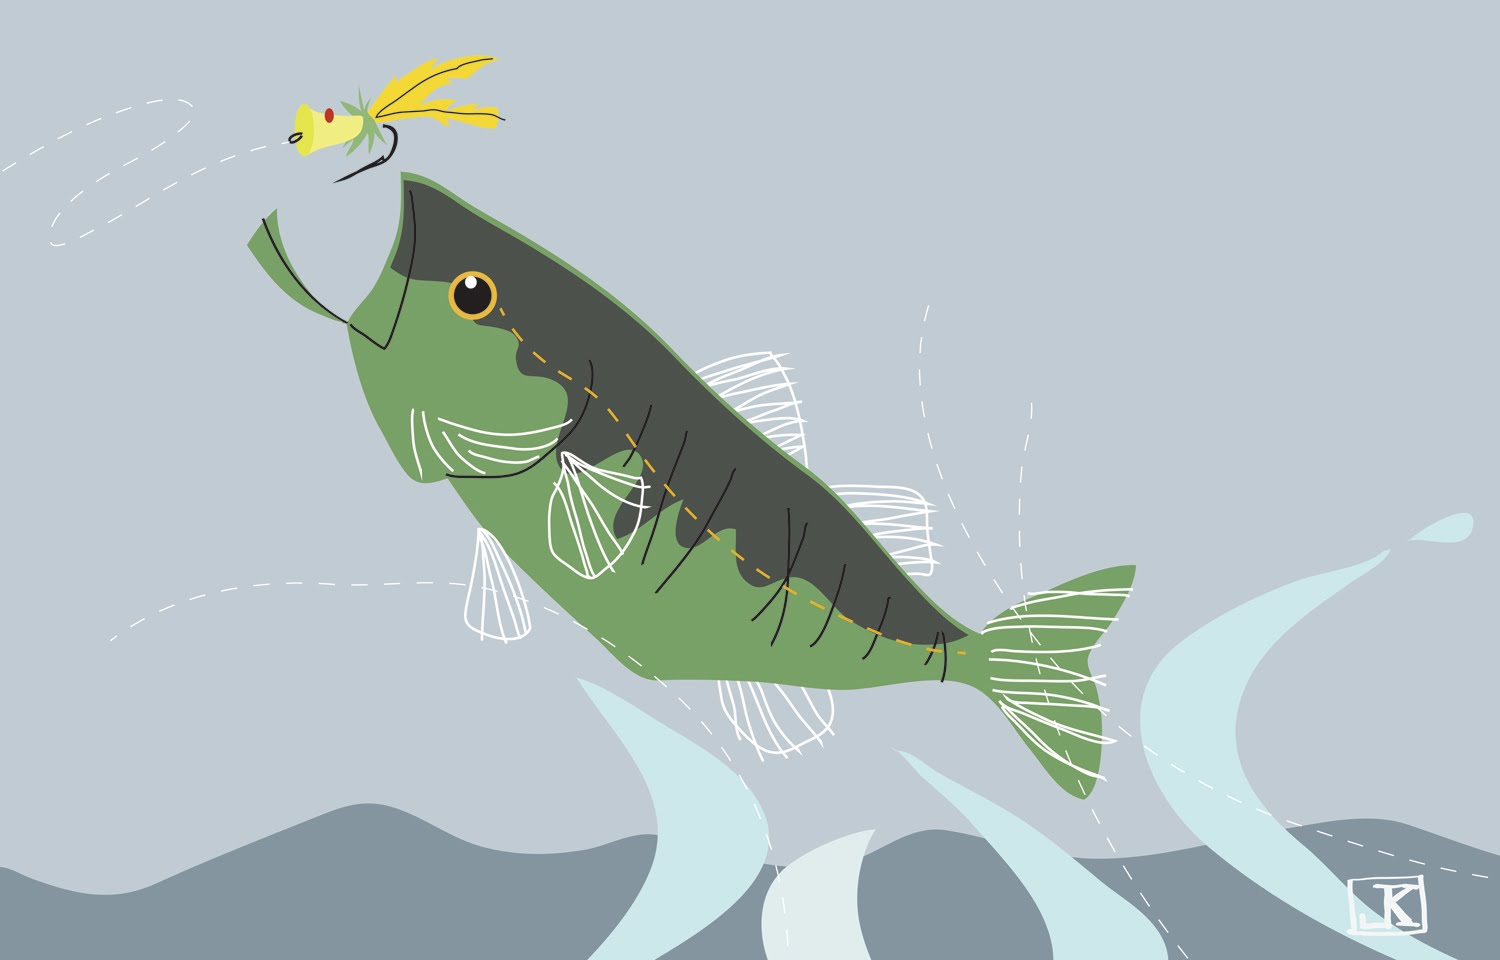 Bass Fishing Drawing at GetDrawings.com   Free for personal use Bass ...